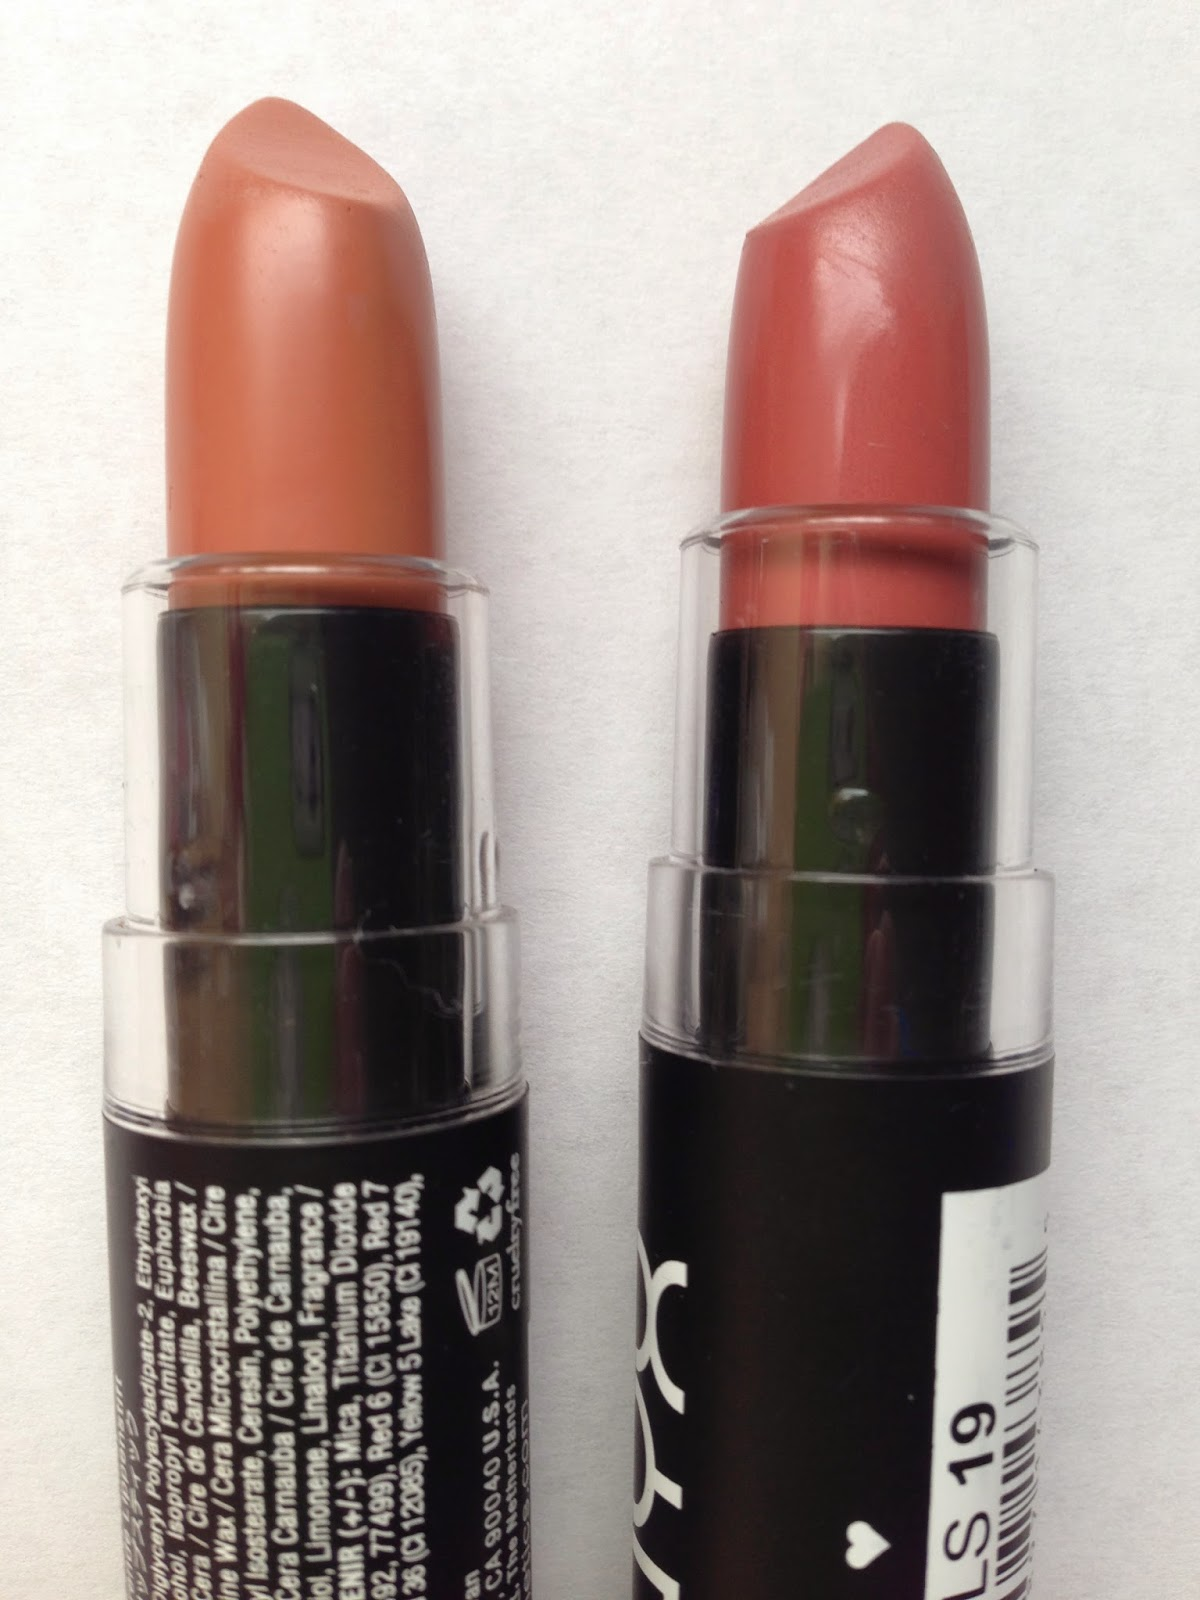 Nyx Lip Lingerie Makes A Great Dupe For The Kylie Jenner: My Makeup Blog: Nyx Matte Lipstick Swatches